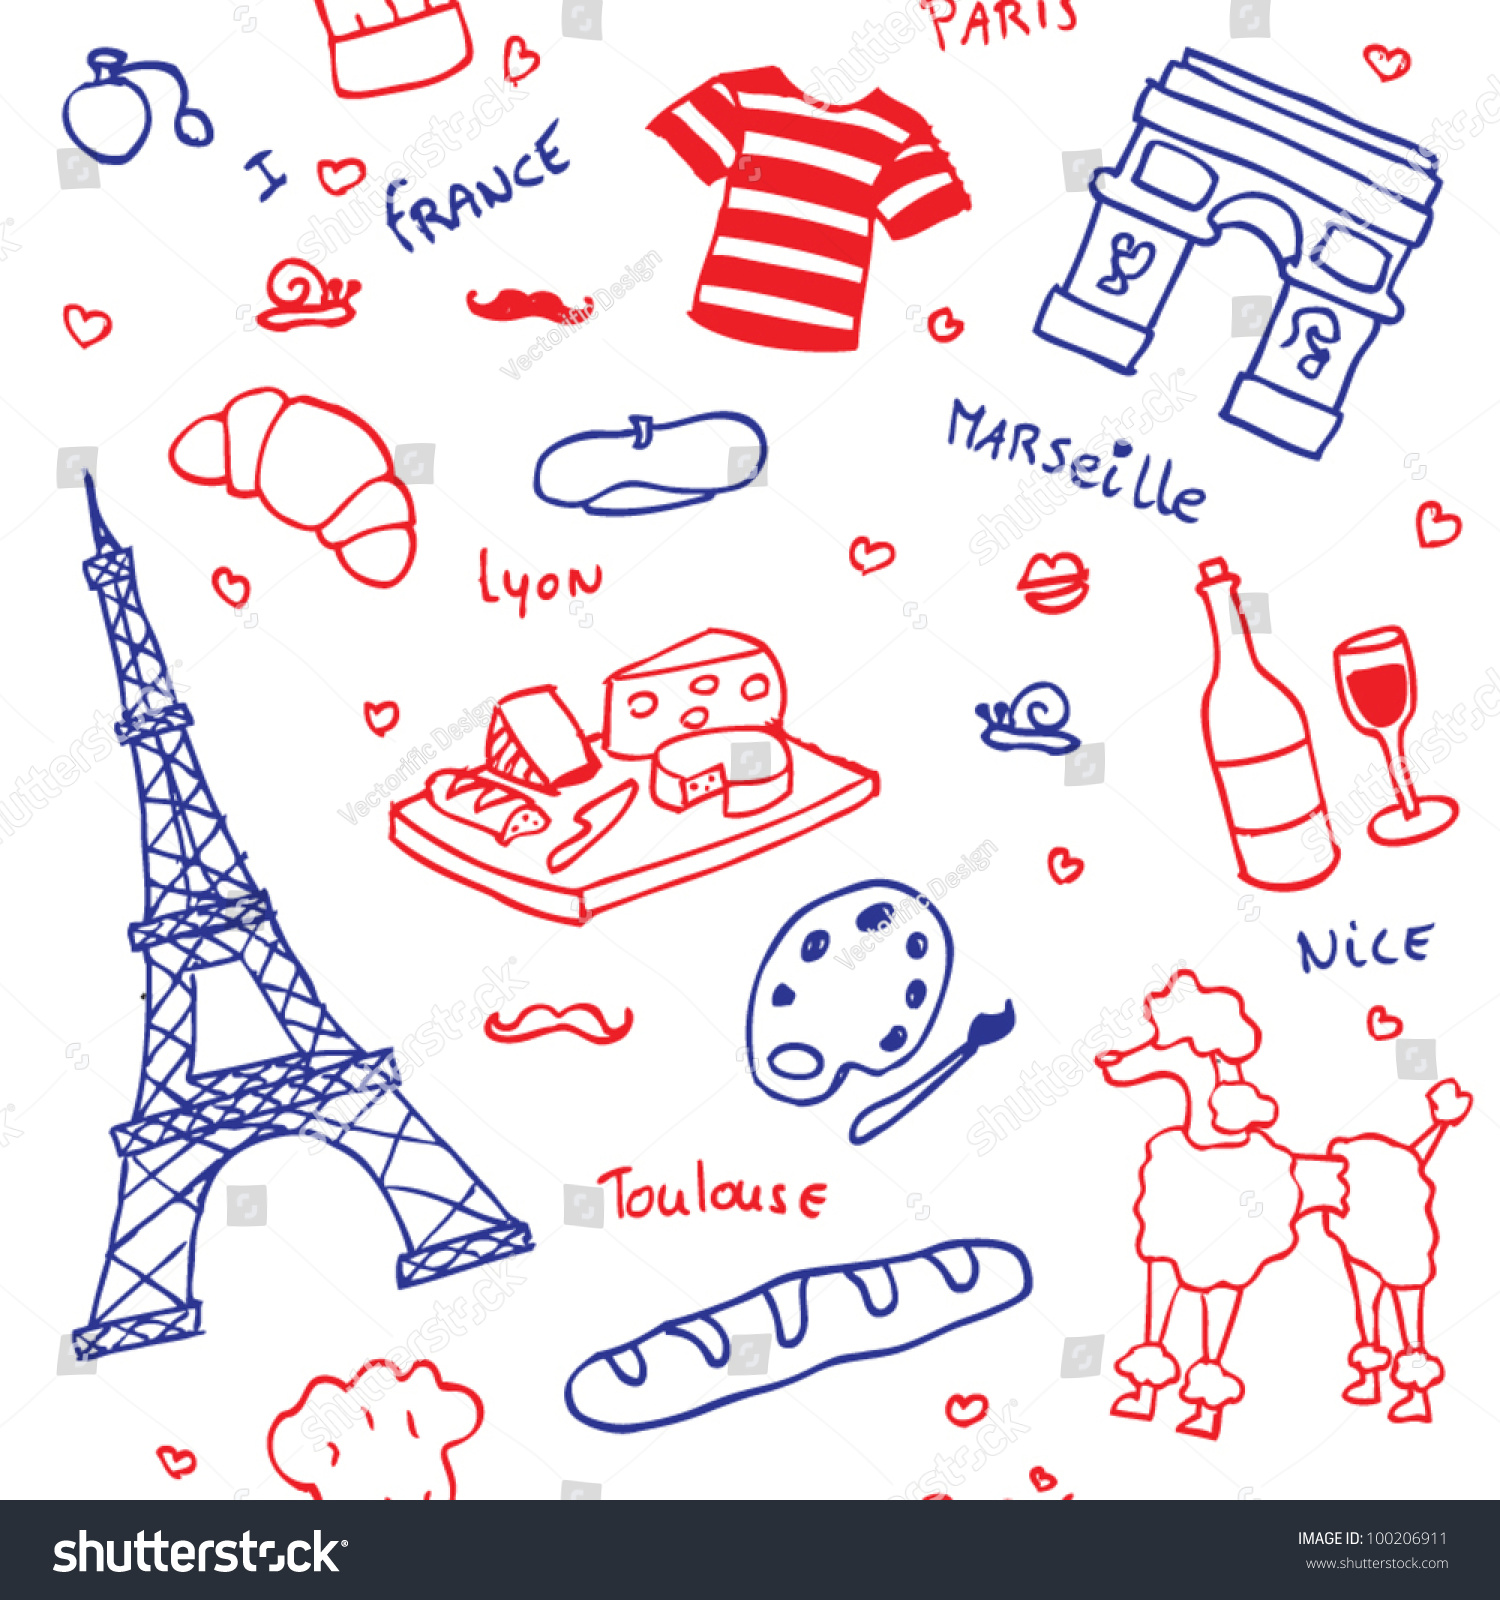 Http Www Shutterstock Com Pic 100206911 Stock Vector French Symbols And Icons Seamless Pattern Html